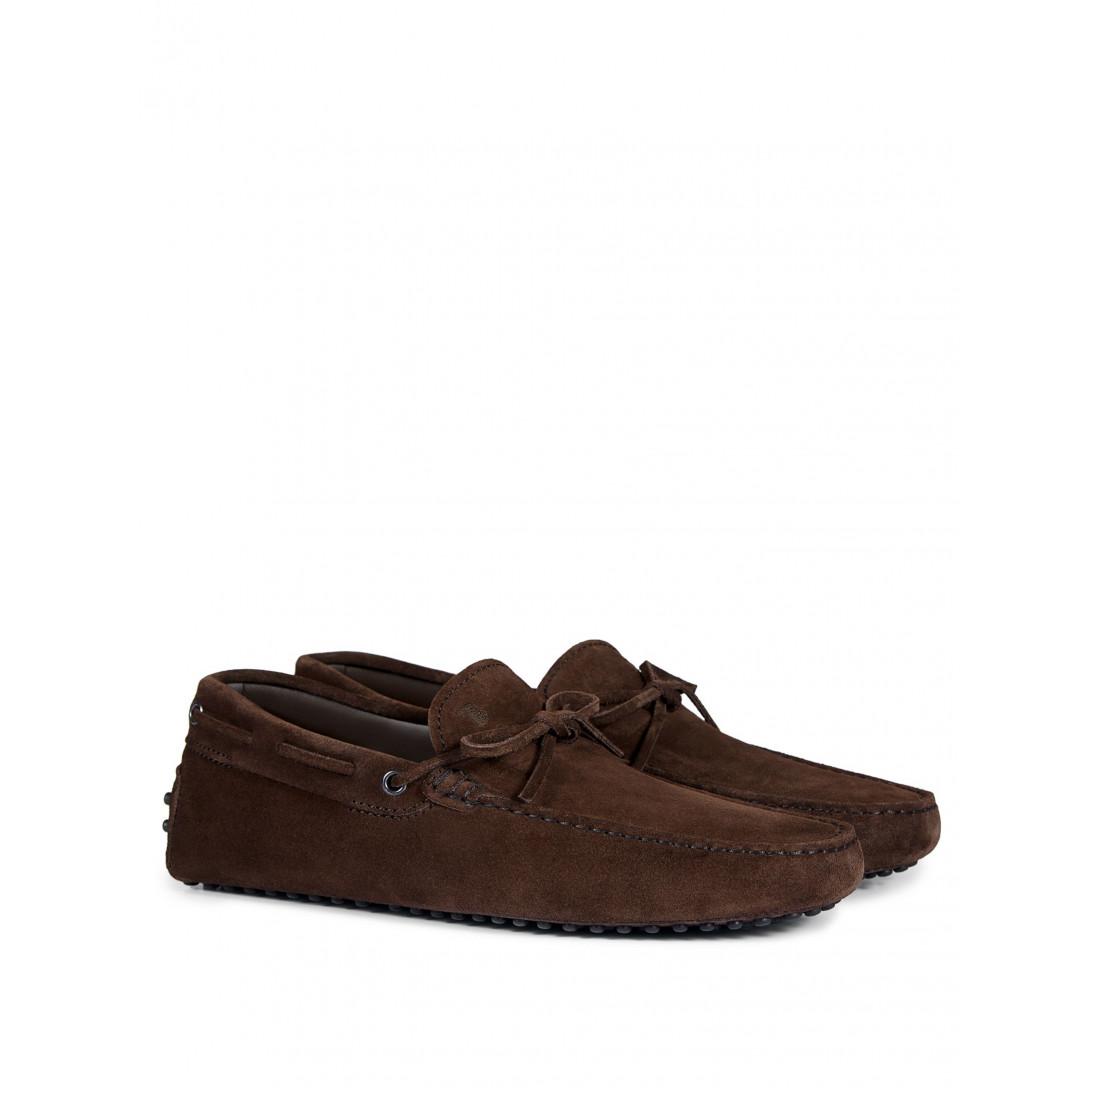 loafers man tods xxm0gw05470re0s800 1674